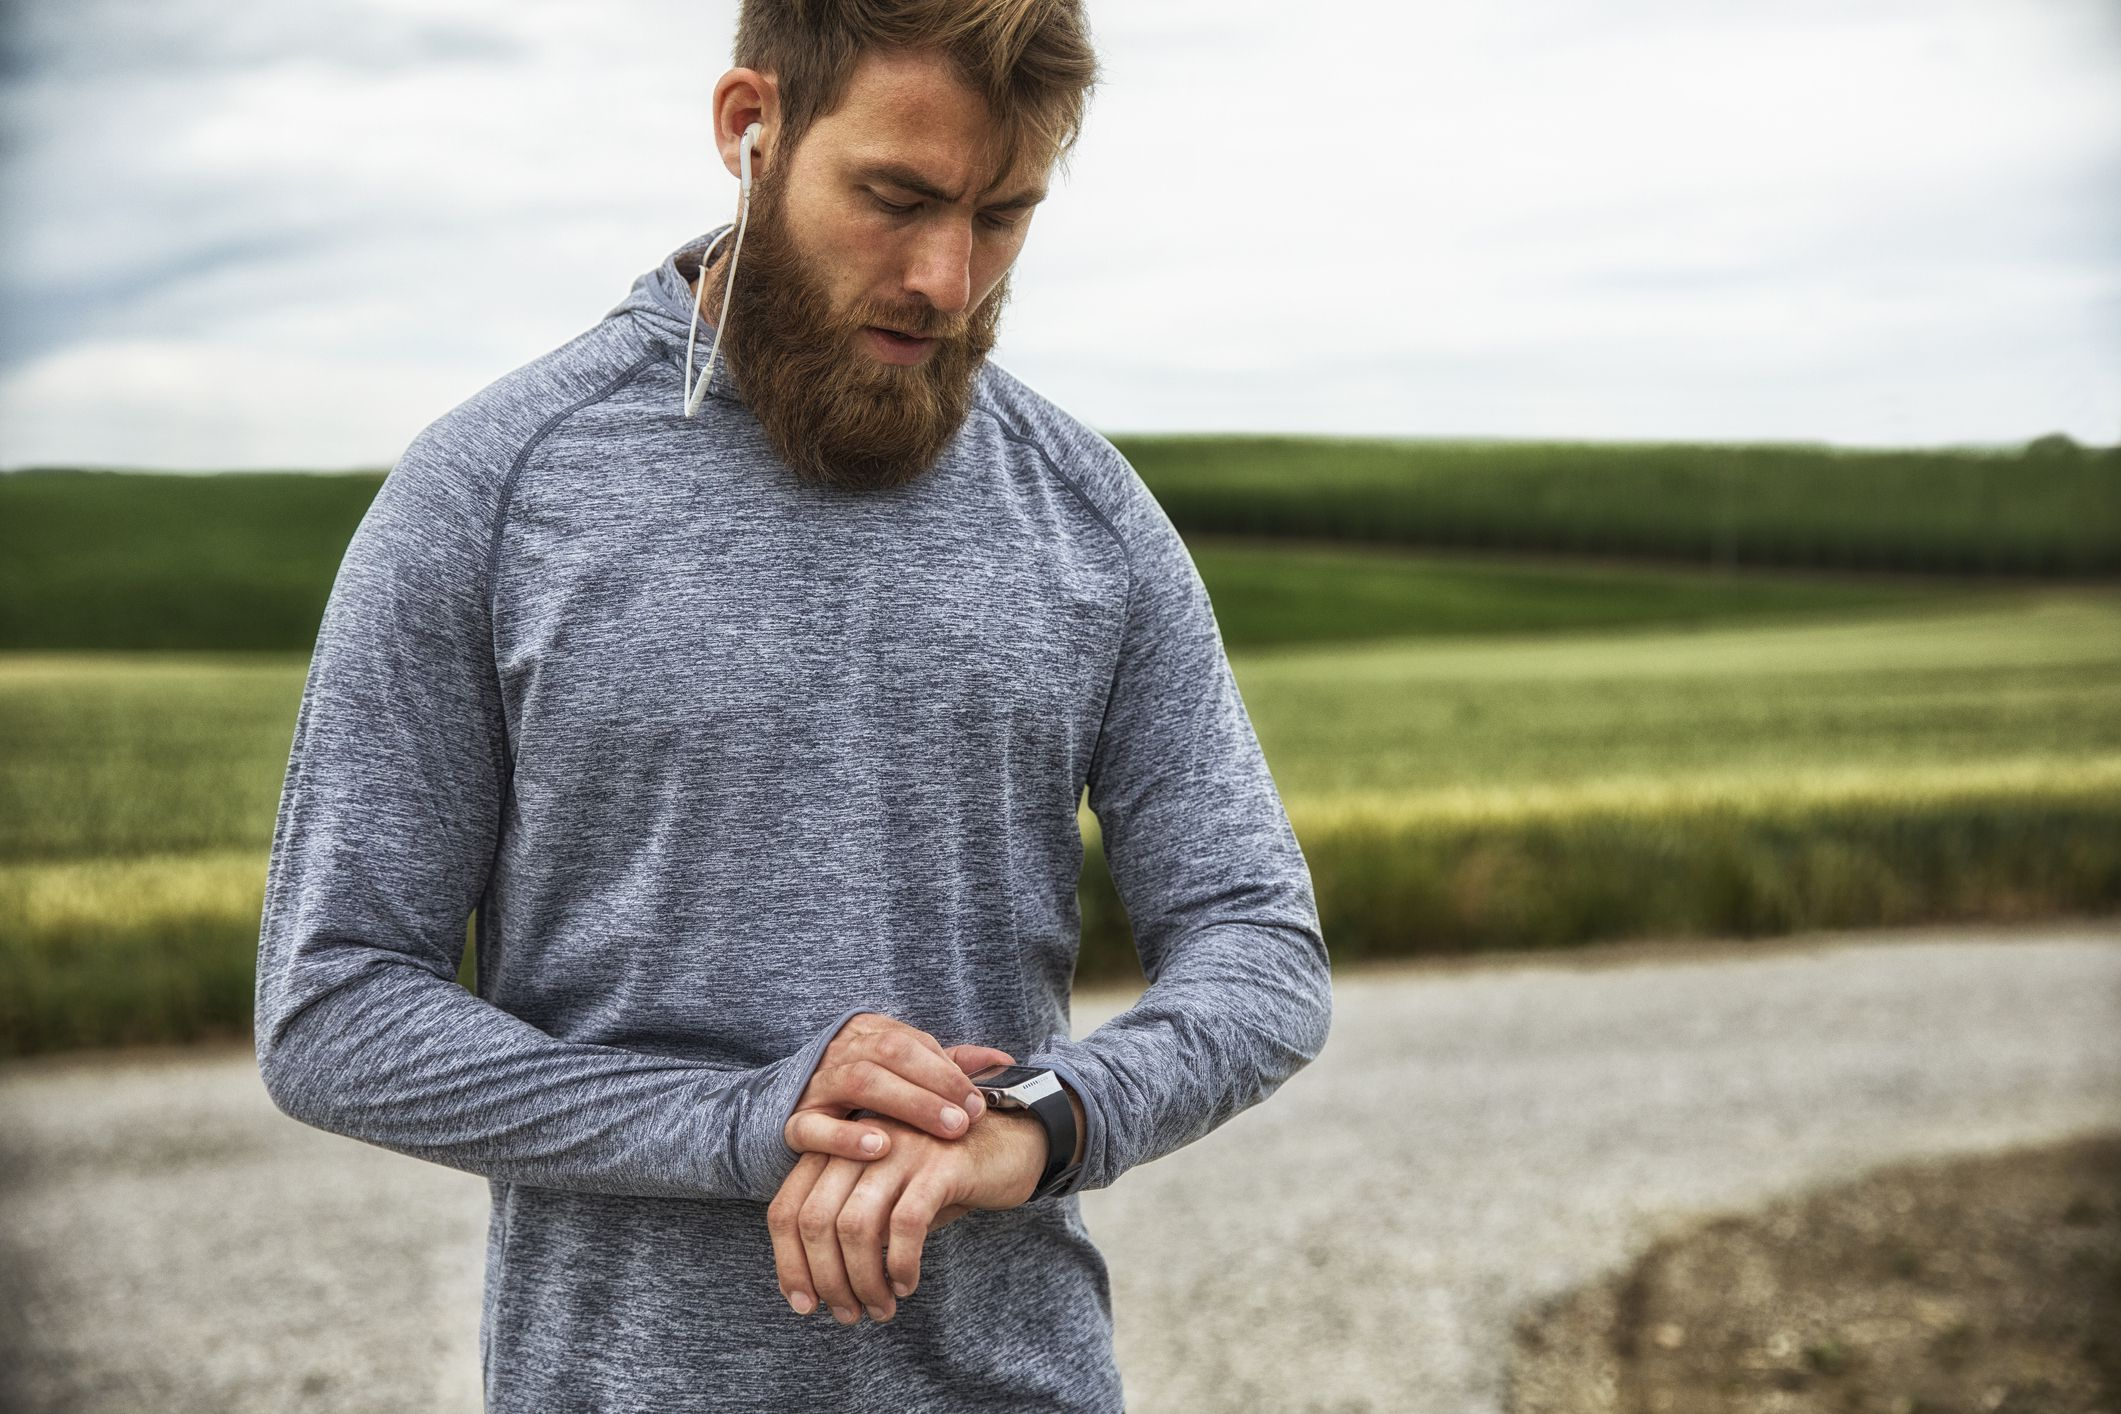 The 9 Best Workout Music Players of 2019